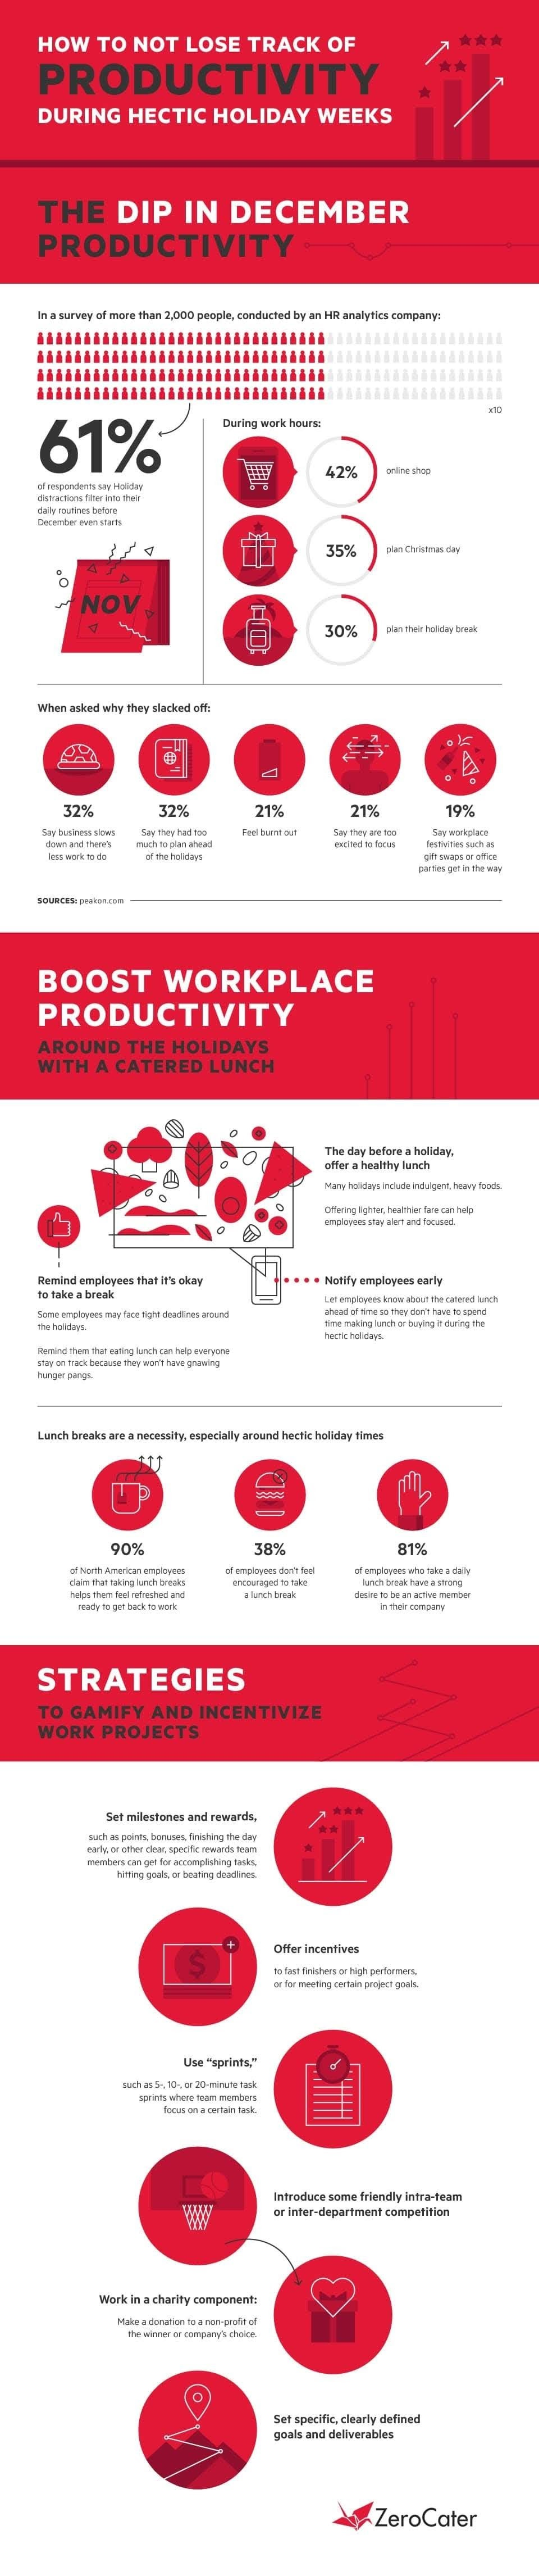 How to Not Lose Track of Productivity During Hectic Holiday Weeks #infographic